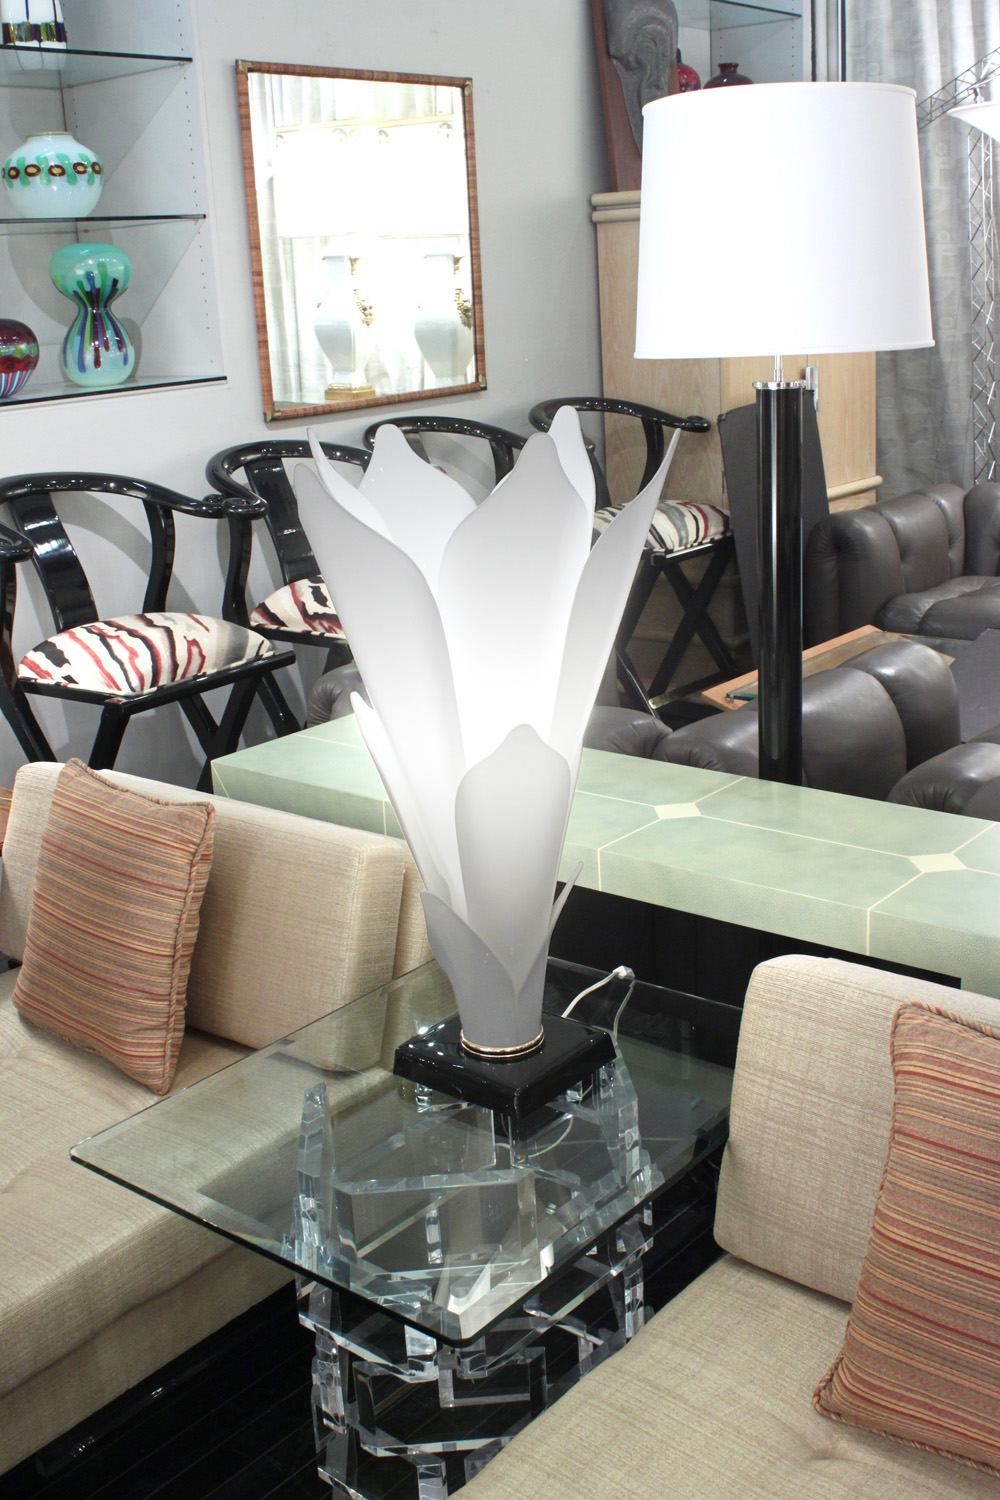 Rougier 30 white petals flower tablelamp220 detail5 hires.jpg